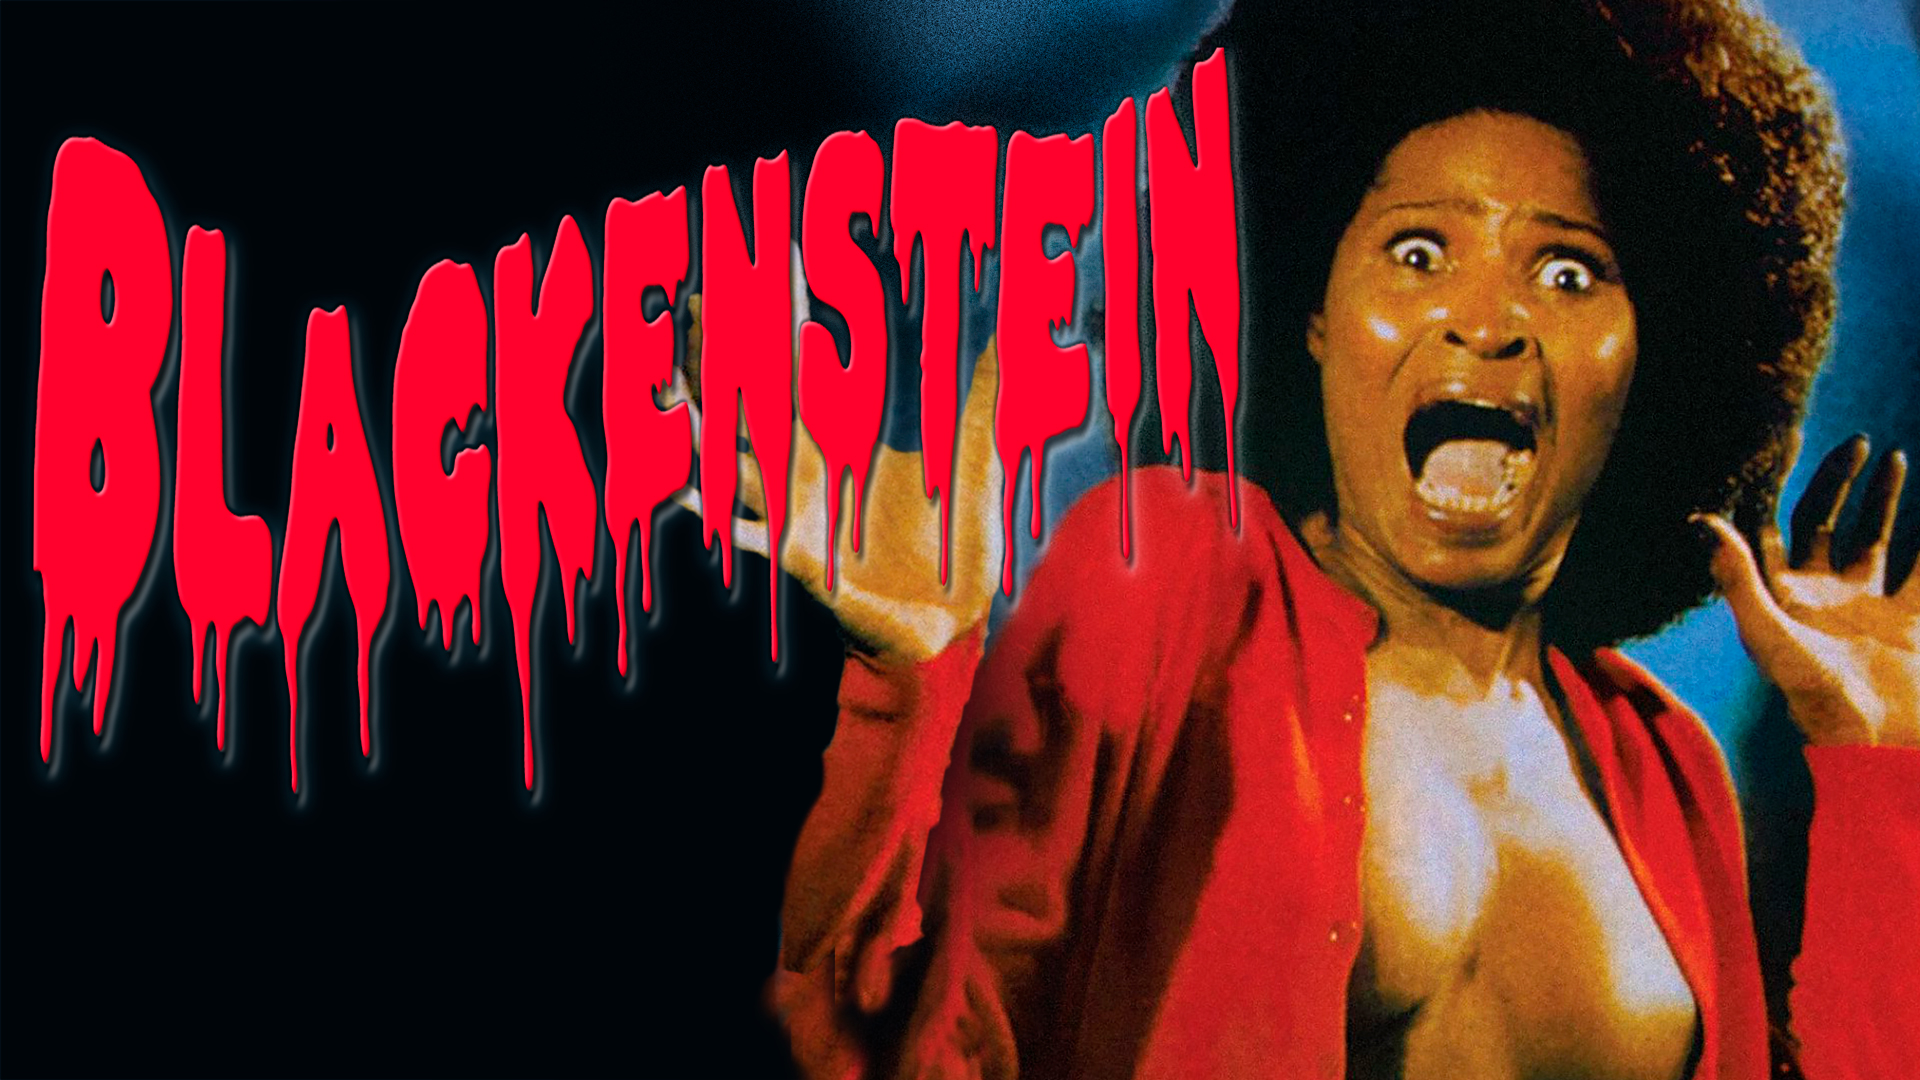 Blackenstein on Amazon Prime Video UK